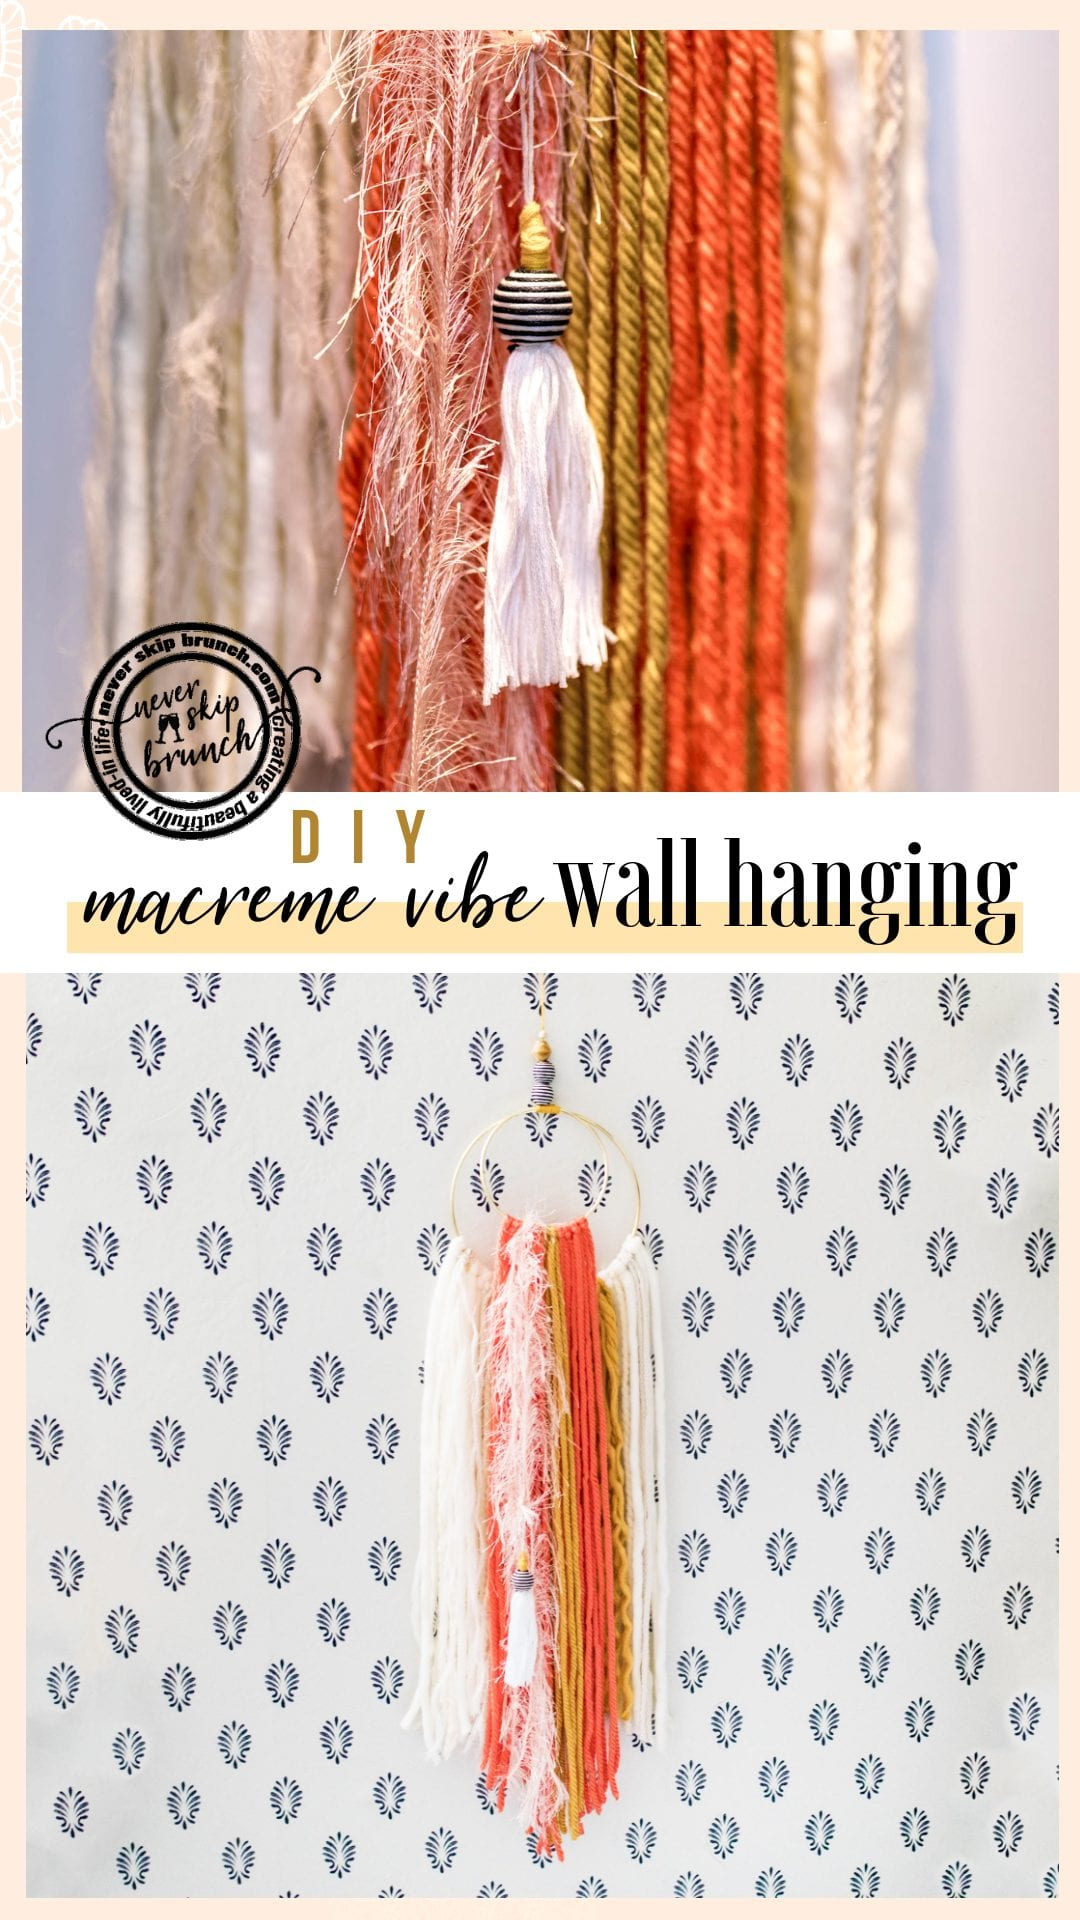 SUPER EASY Wall Hanging DIY | yarn wall hanging | Fringe Wall hanging | macrame wall hanging | macrame wall hanging diy | yarn wall hanging diy tutorials | Never Skip Brunch by Cara Newhart | #neverskipbrunch #DIY #decor #yarn #boho